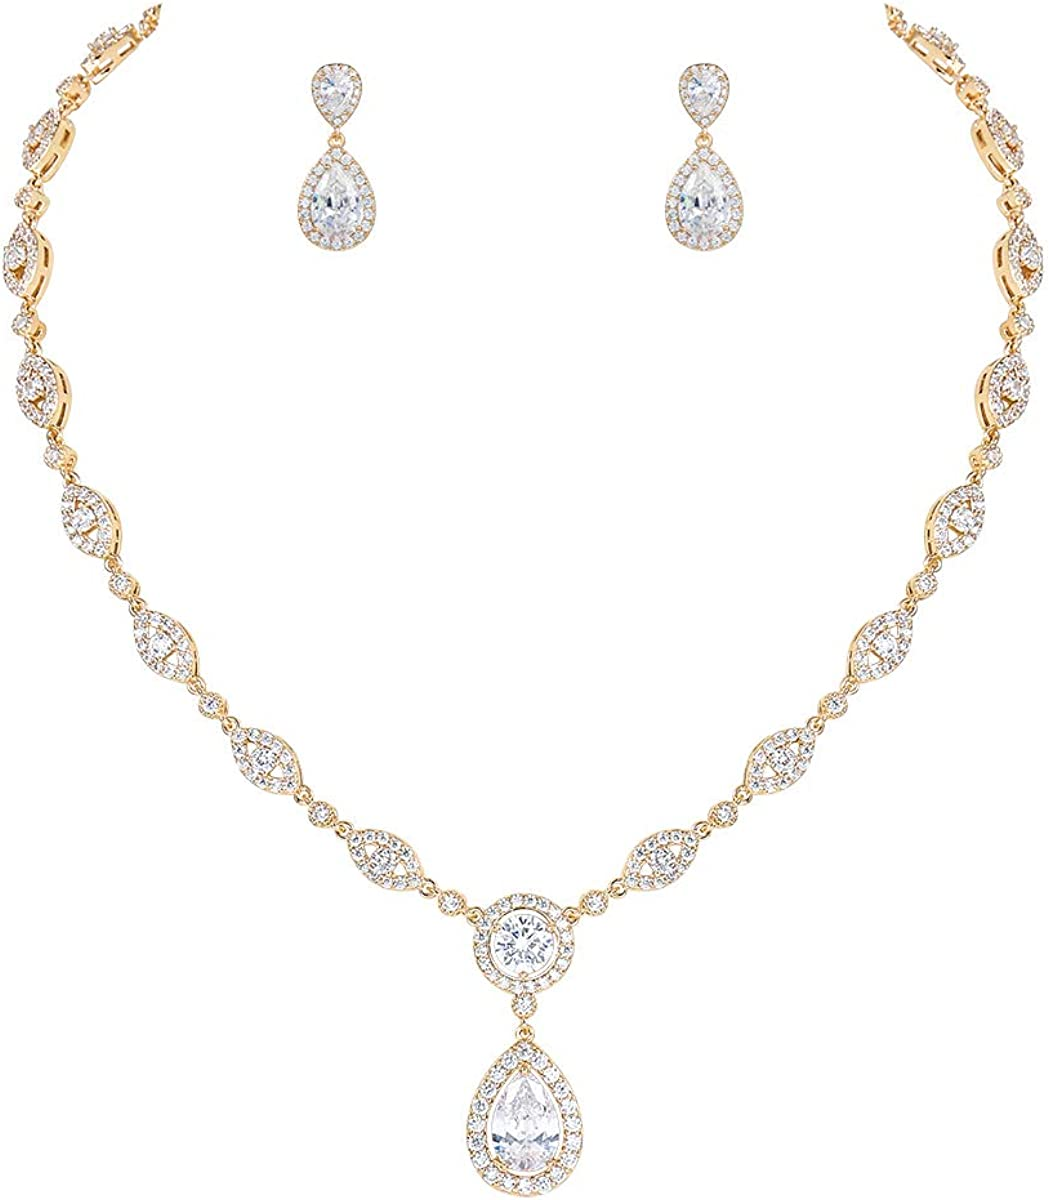 MEEDOZ Women's CZ Marquise Pear-Shaped Teardrop Cubic Zirconia Pendant Necklace Earring Sets for Bridal Wedding Jewelry